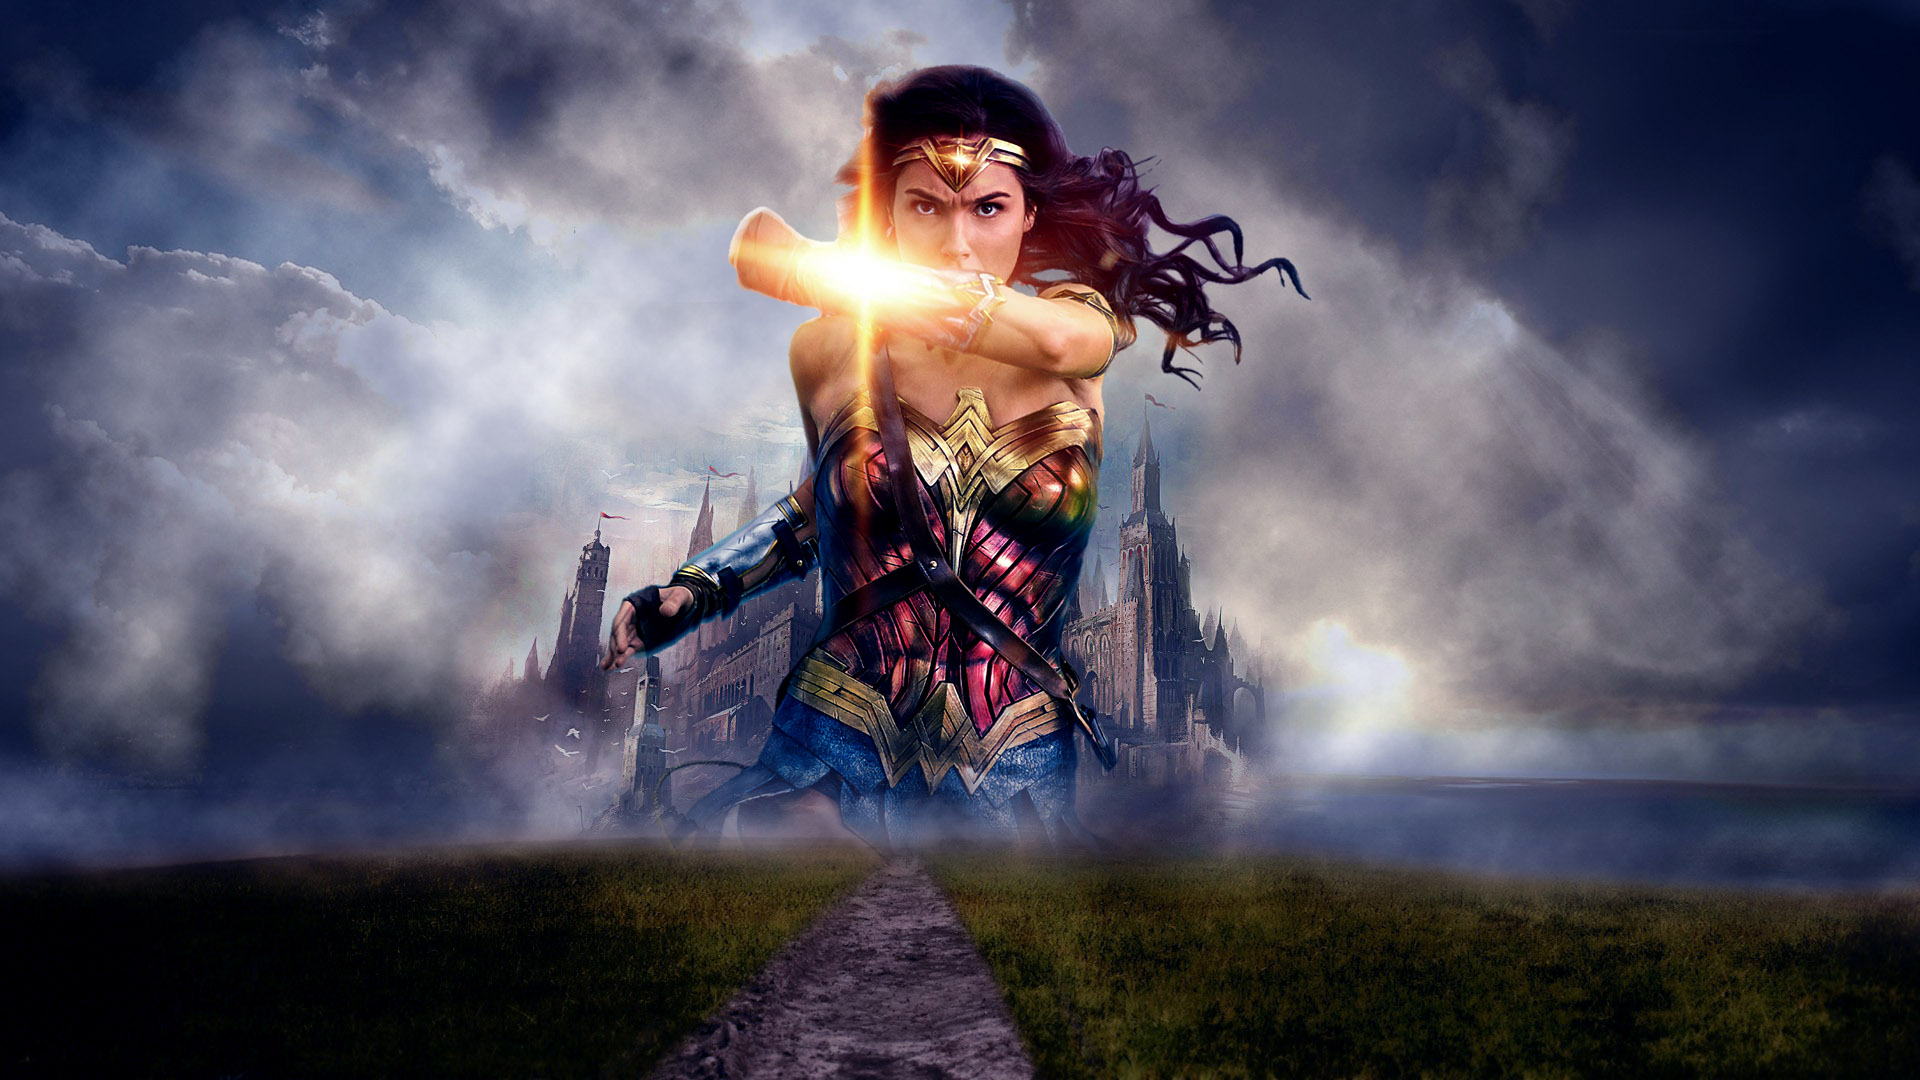 Wonder Woman Movie Hd Wallpaper Posted By John Anderson